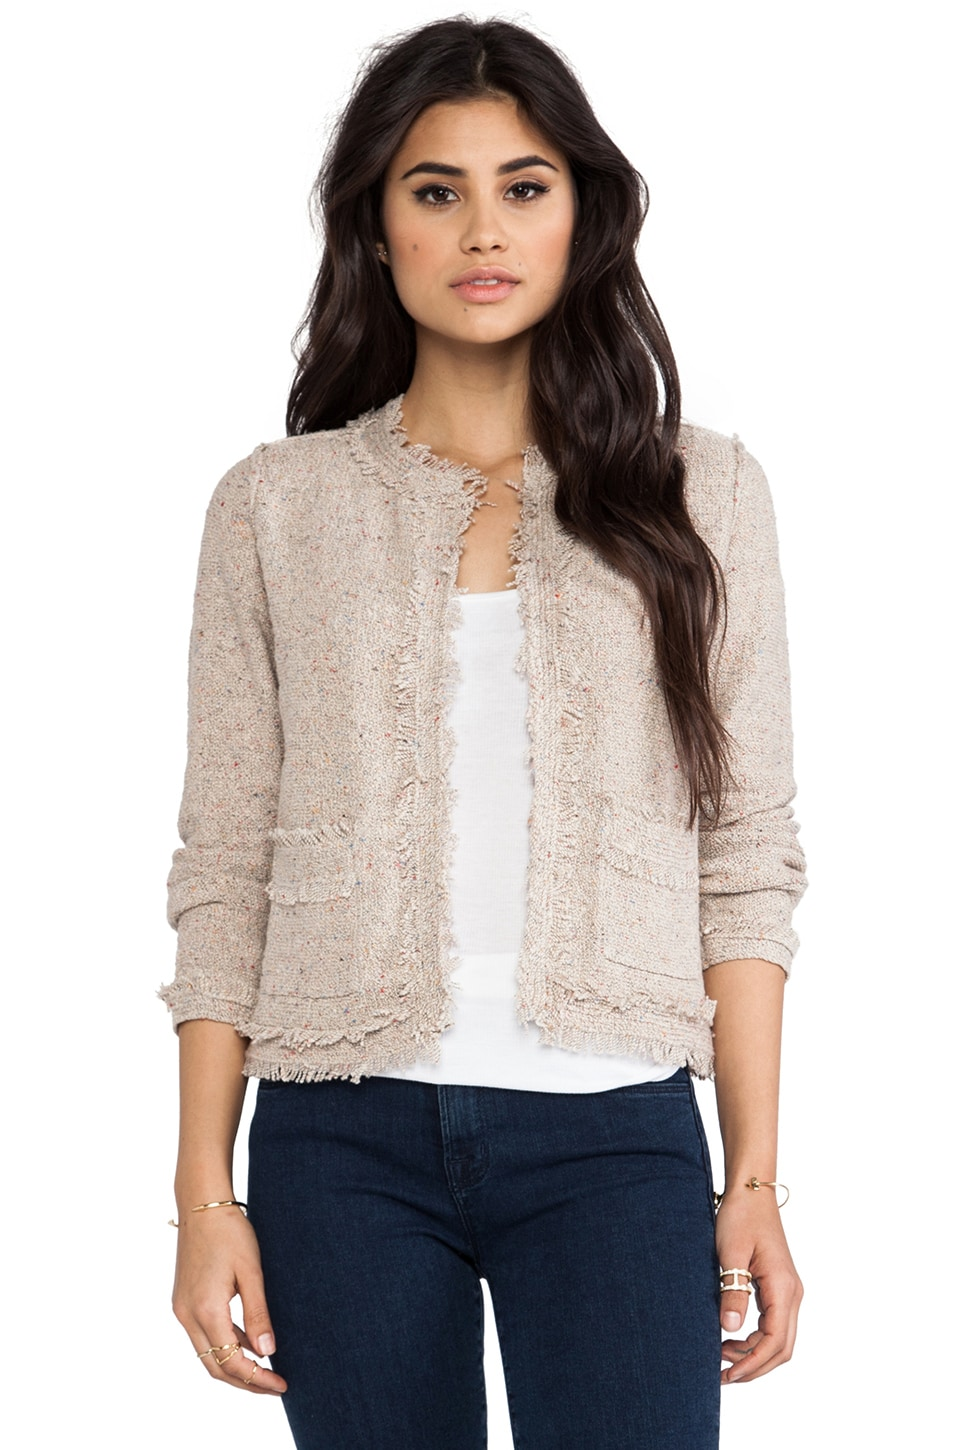 Joie Porsha Rainbow Boucle Jacket in Natural